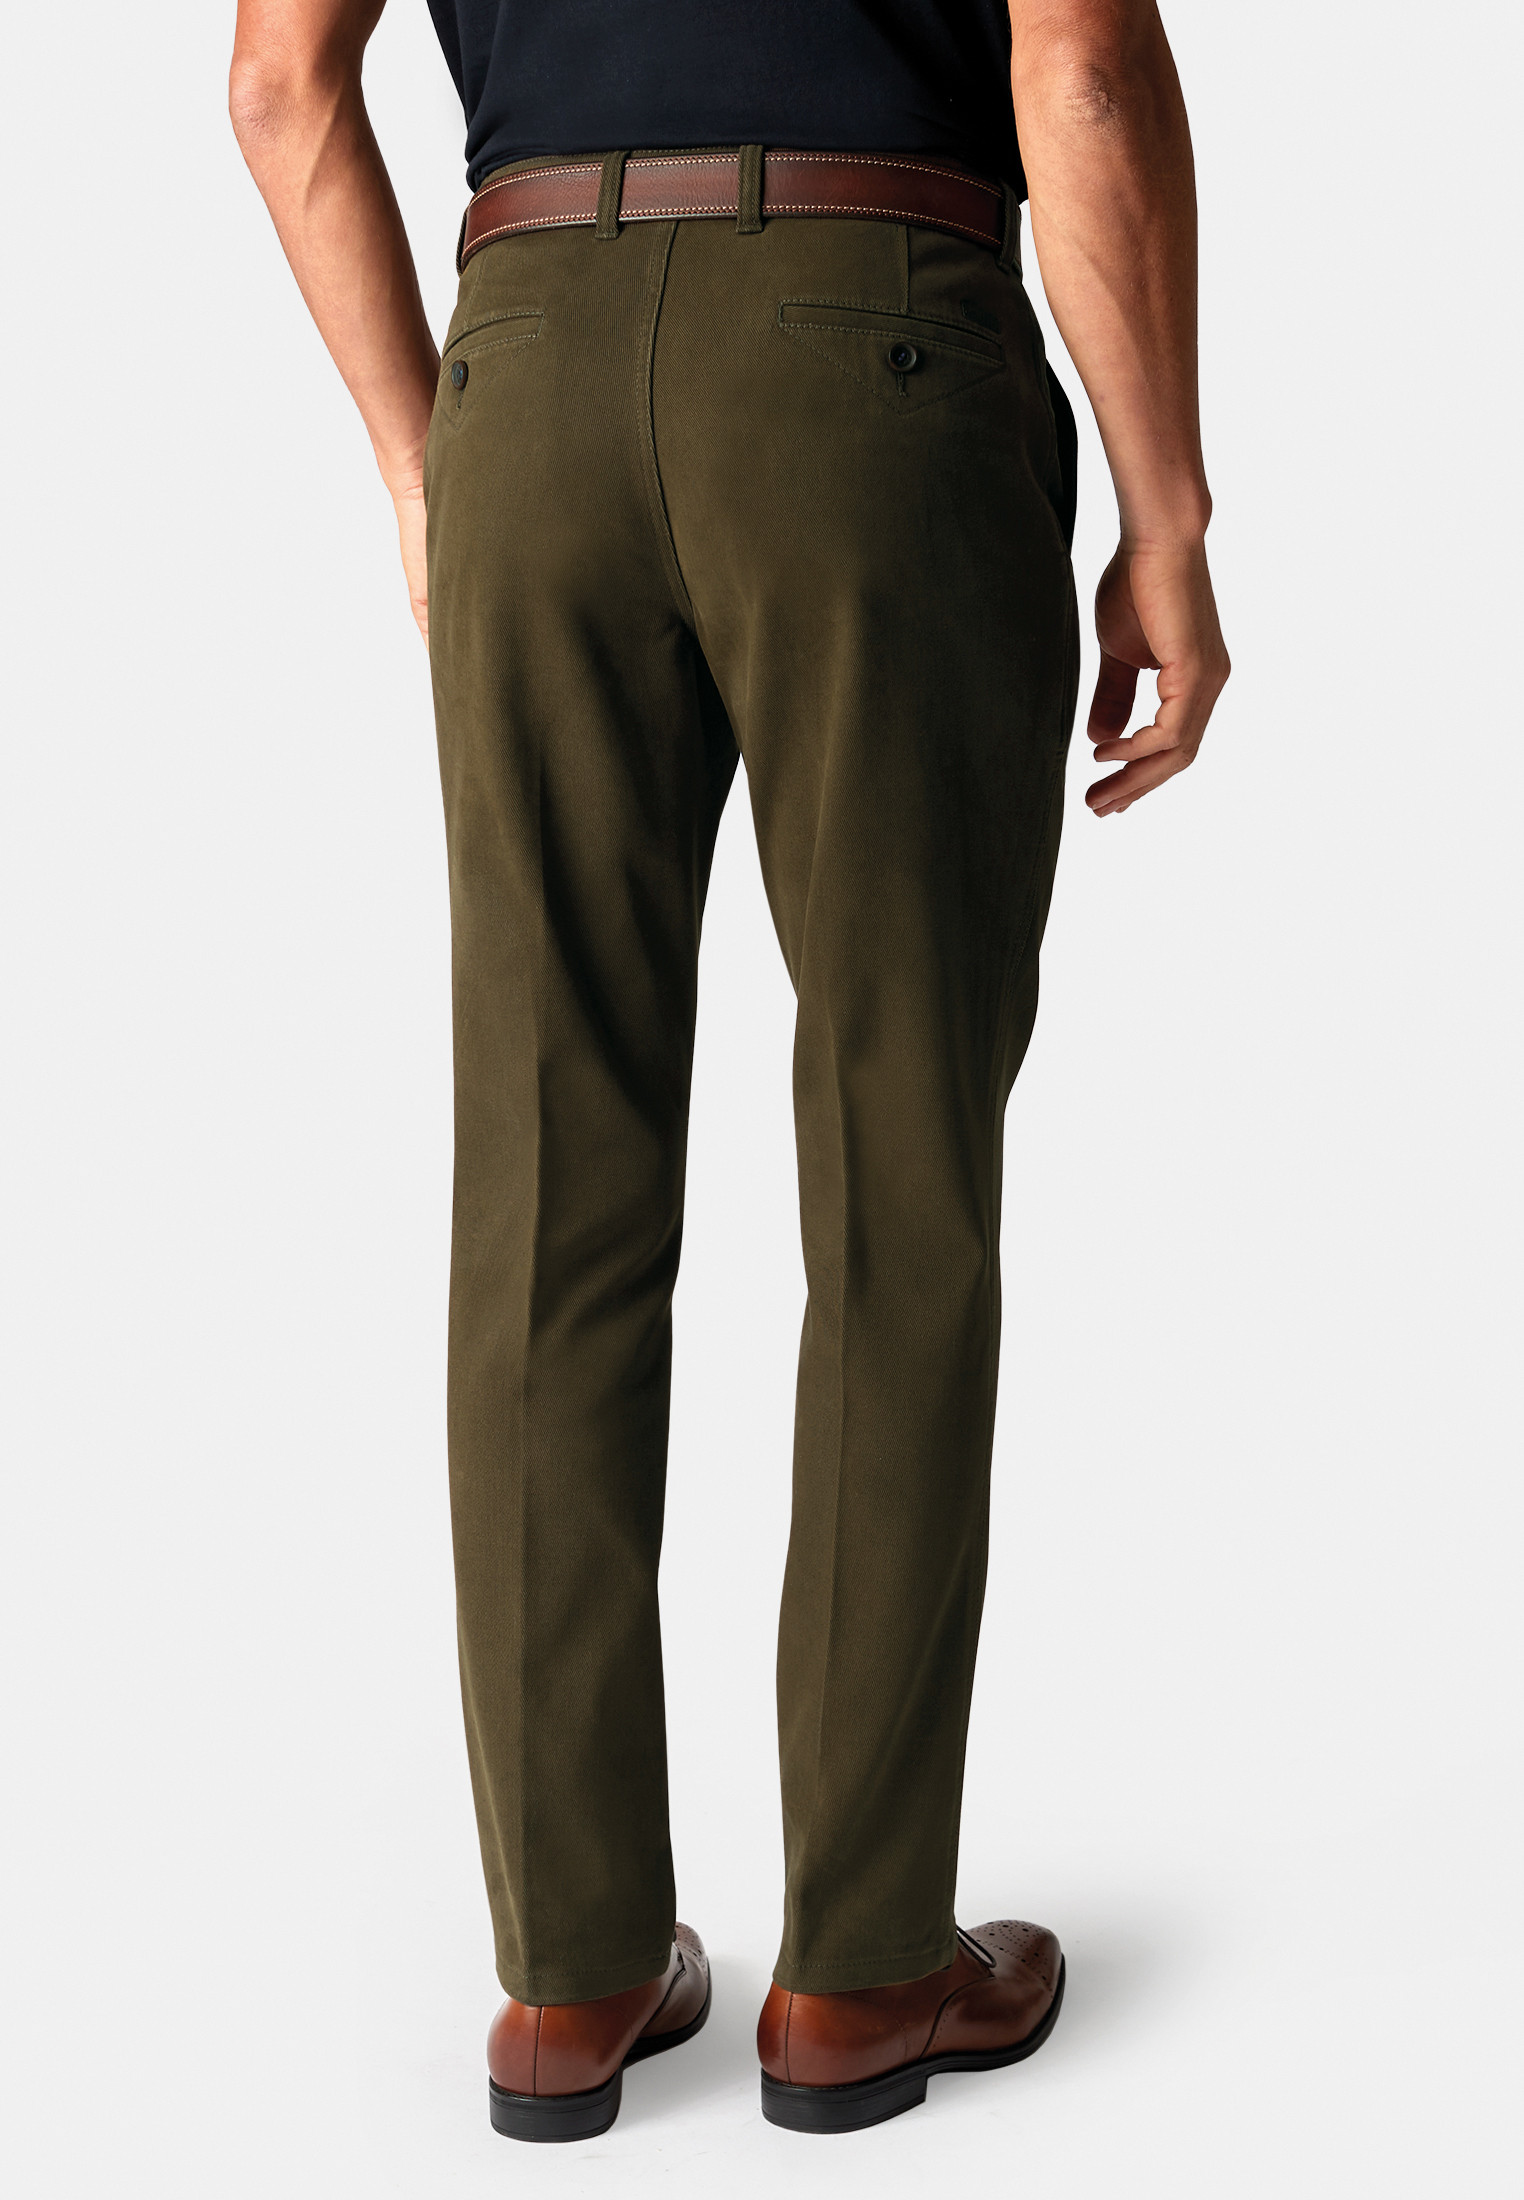 Seychelles Olive Classic and Tailored Fit Winter Weight Cotton Twill Trouser